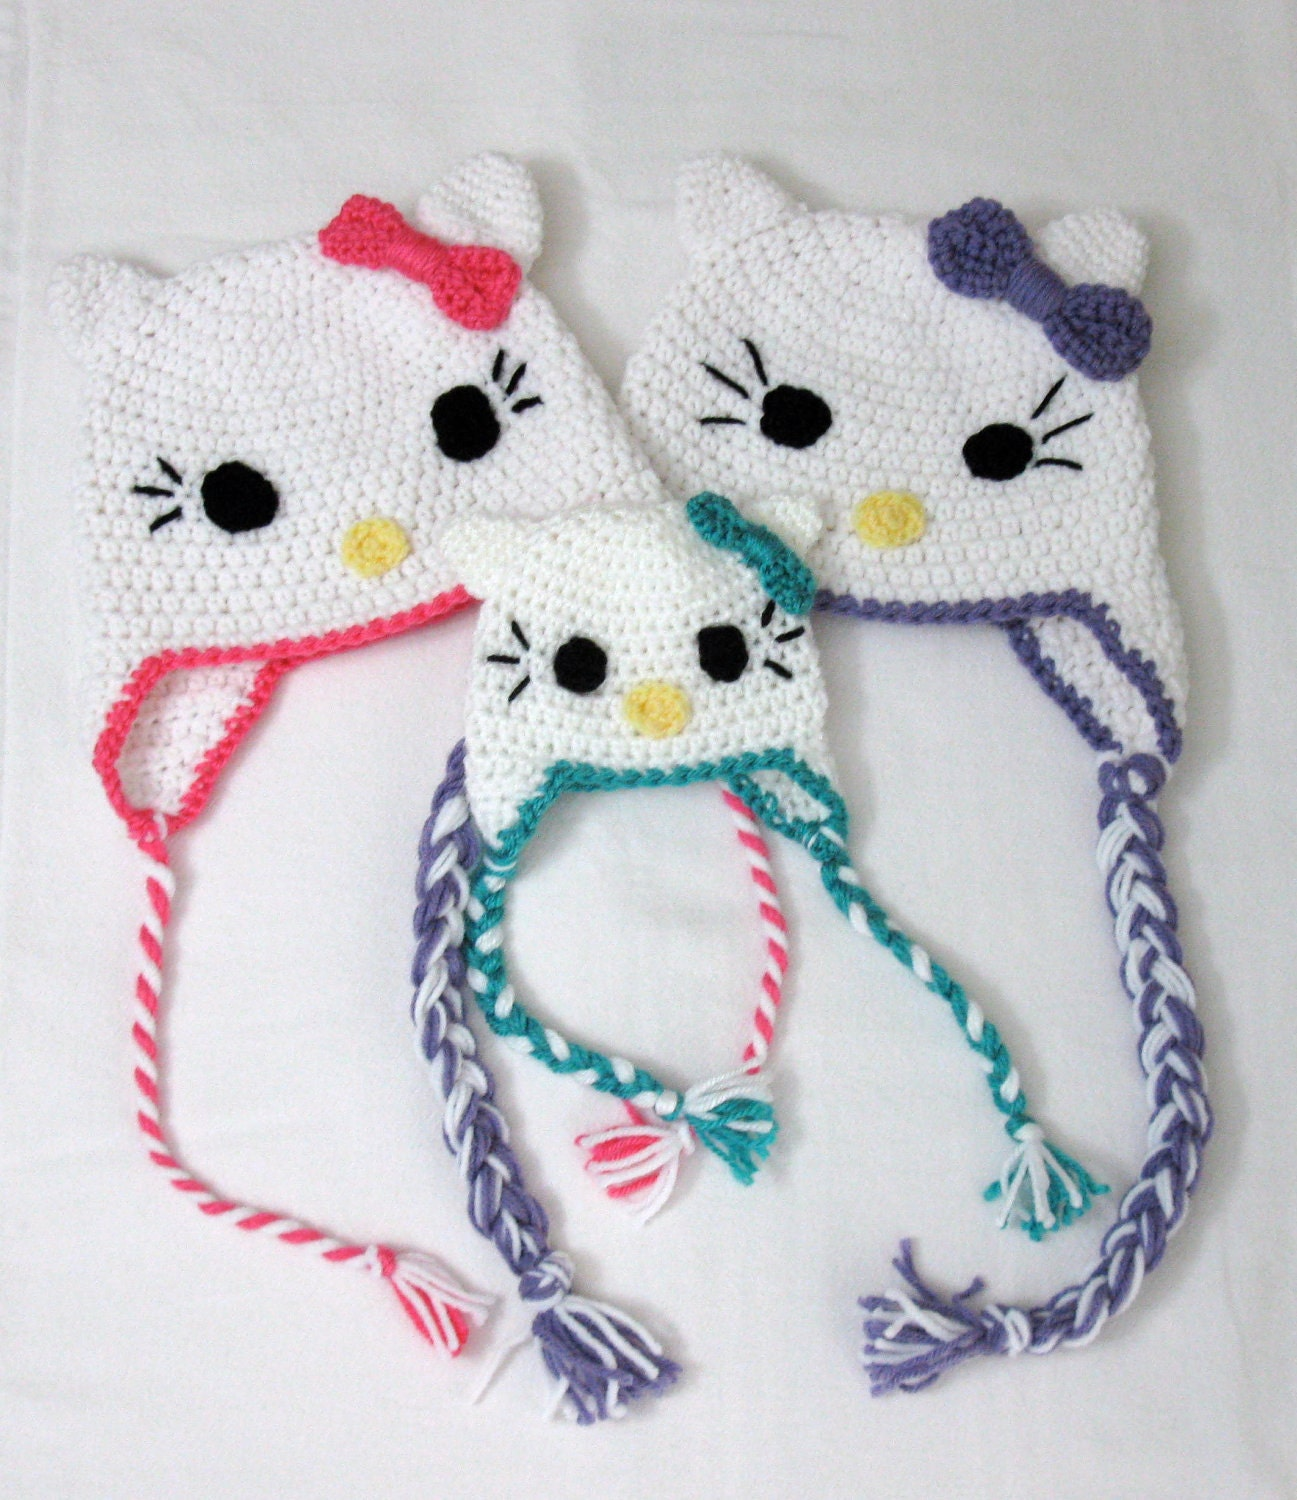 Free Crochet Pattern For A Hello Kitty Hat : HELLO KITTY CROCHET PATTERN ? Crochet For Beginners